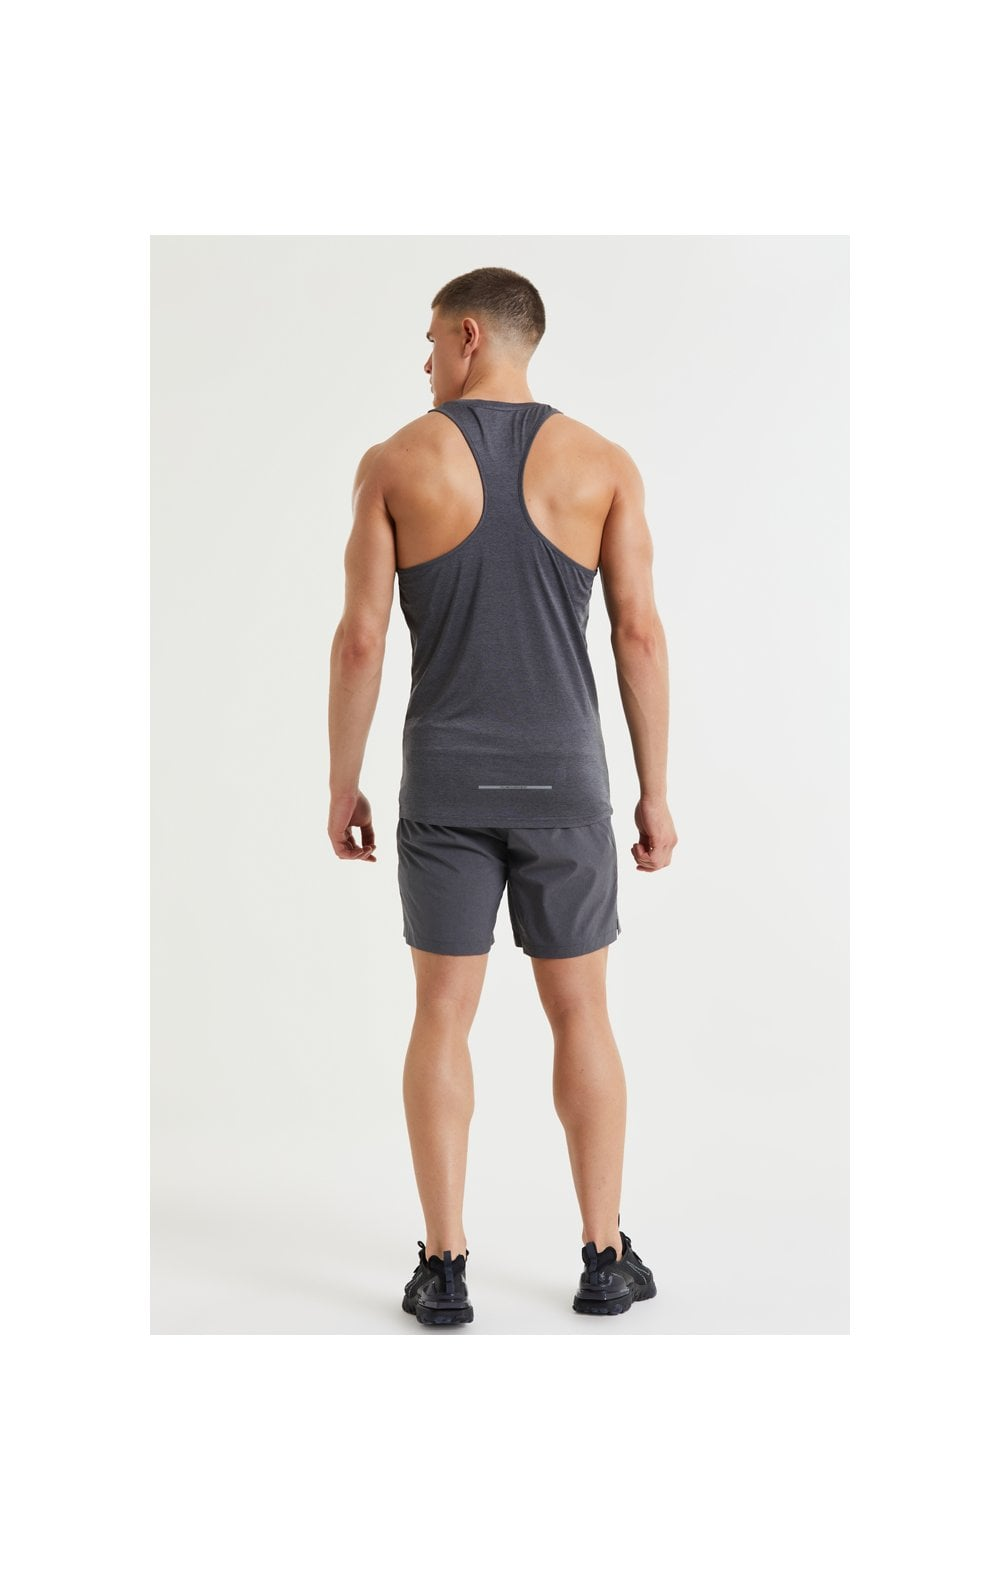 Load image into Gallery viewer, SikSilk Pressure Vest - Charcoal Marl (5)